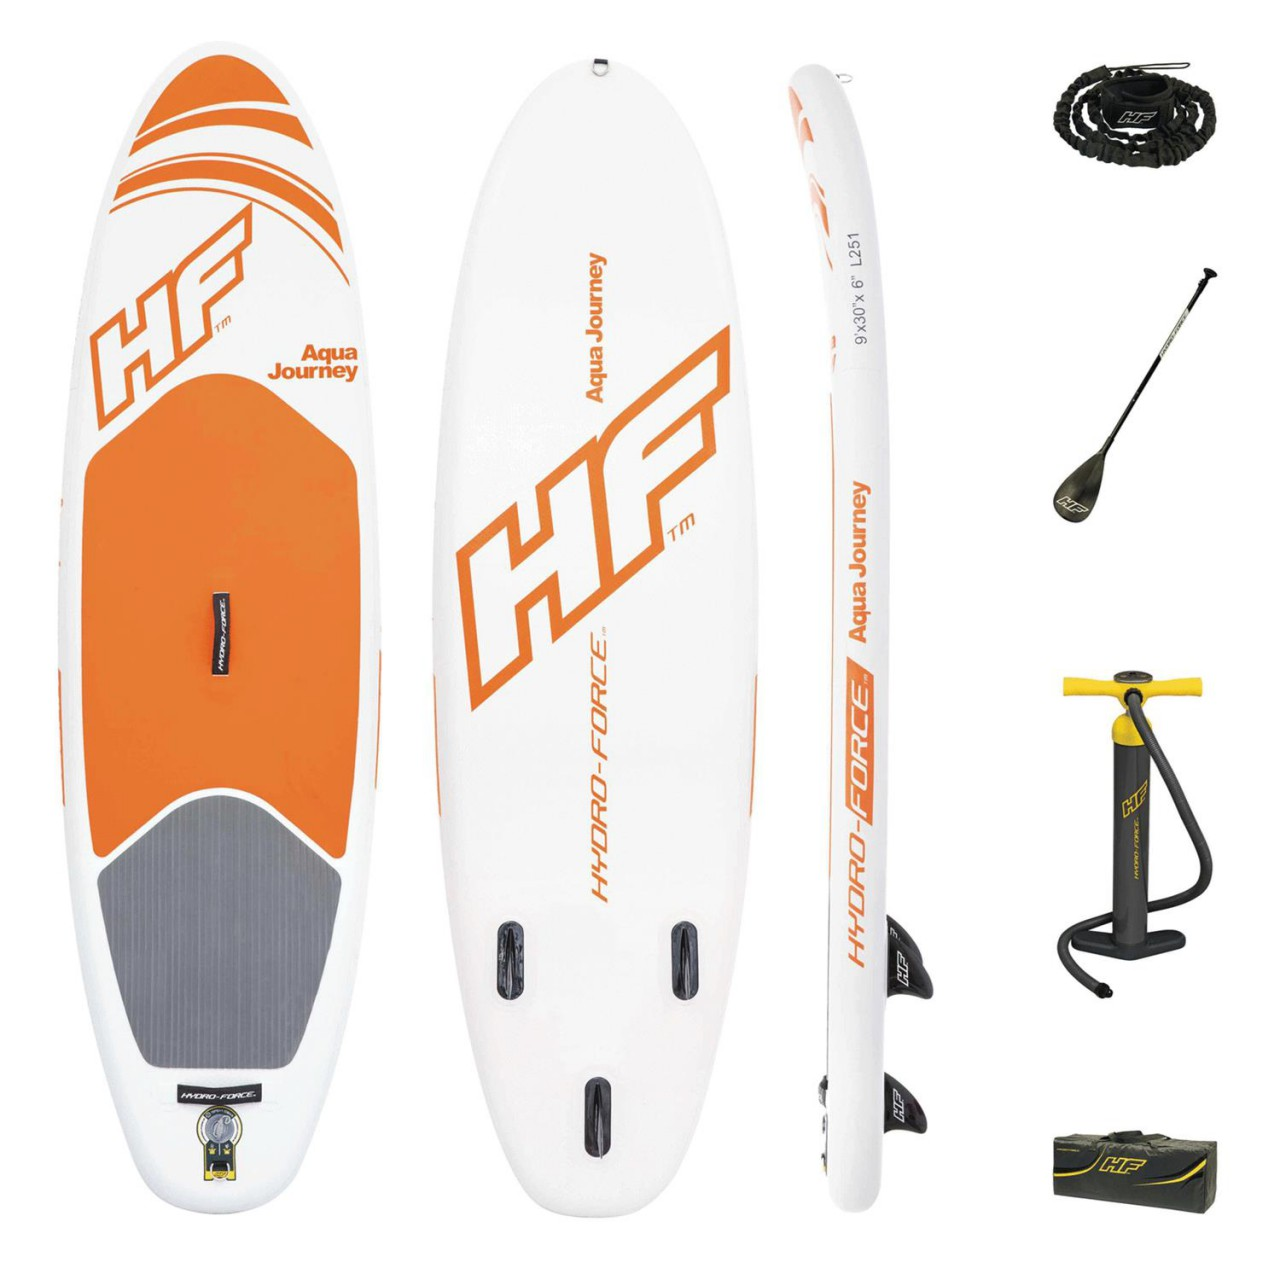 Bestway Hydro-Force SUP-Board aufblasbares Stand Up Paddelboard Aqua Journey